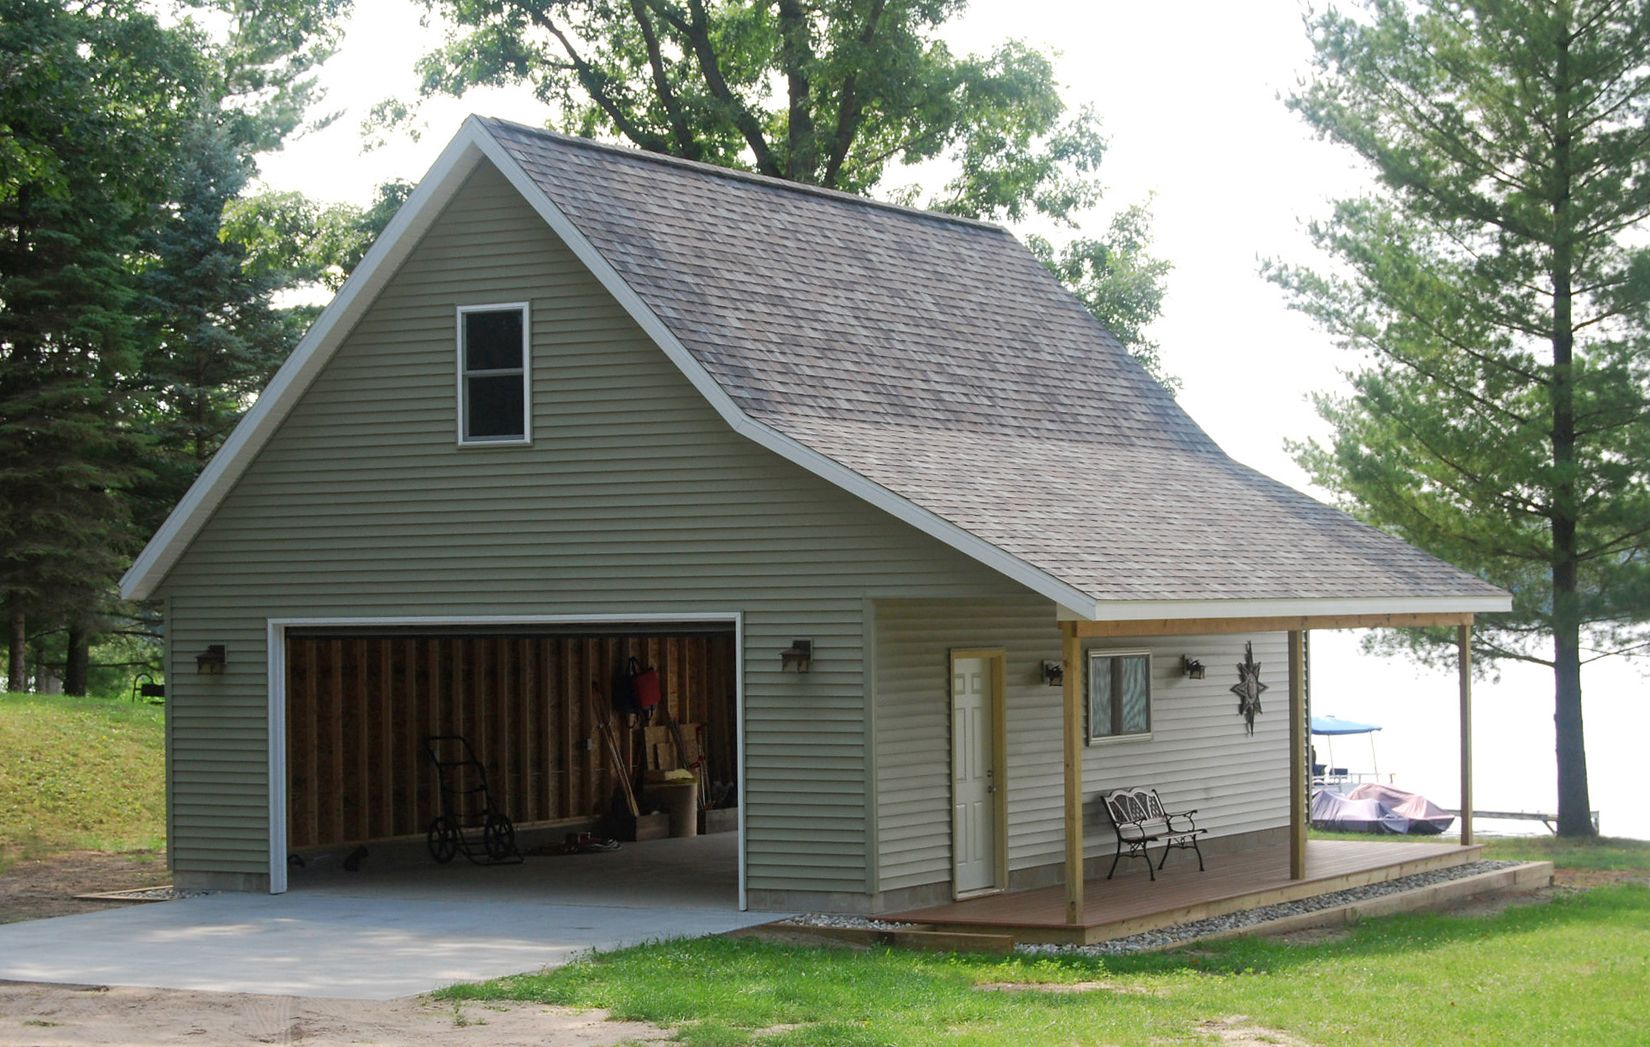 pole barn garage plans – Building Plans For A Garage